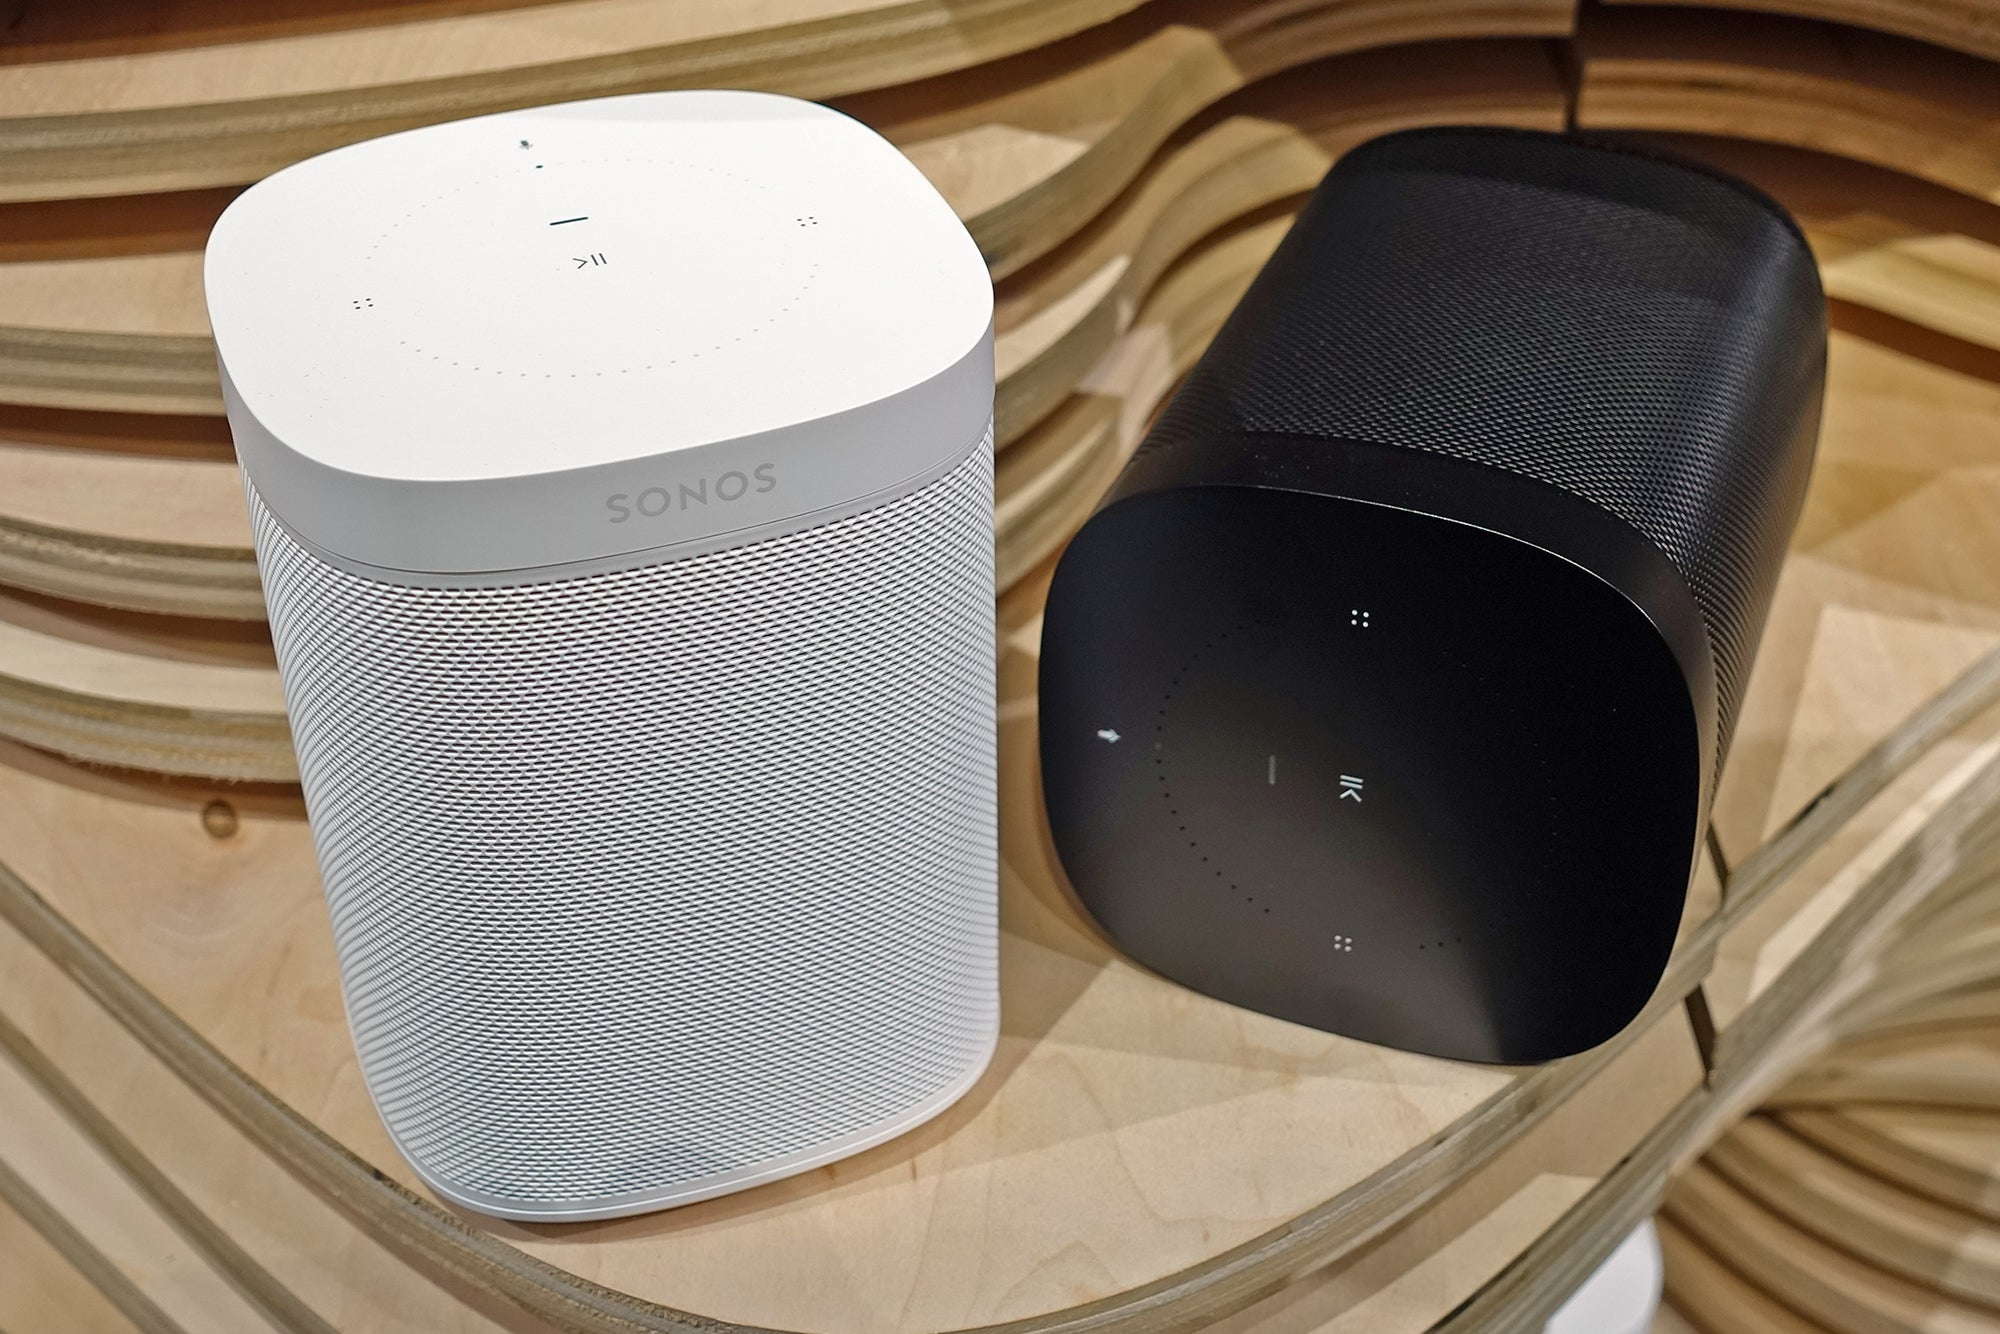 Sonos' new If This Then That (IFTTT) feature is the best tech news of the day | Trusted Reviews